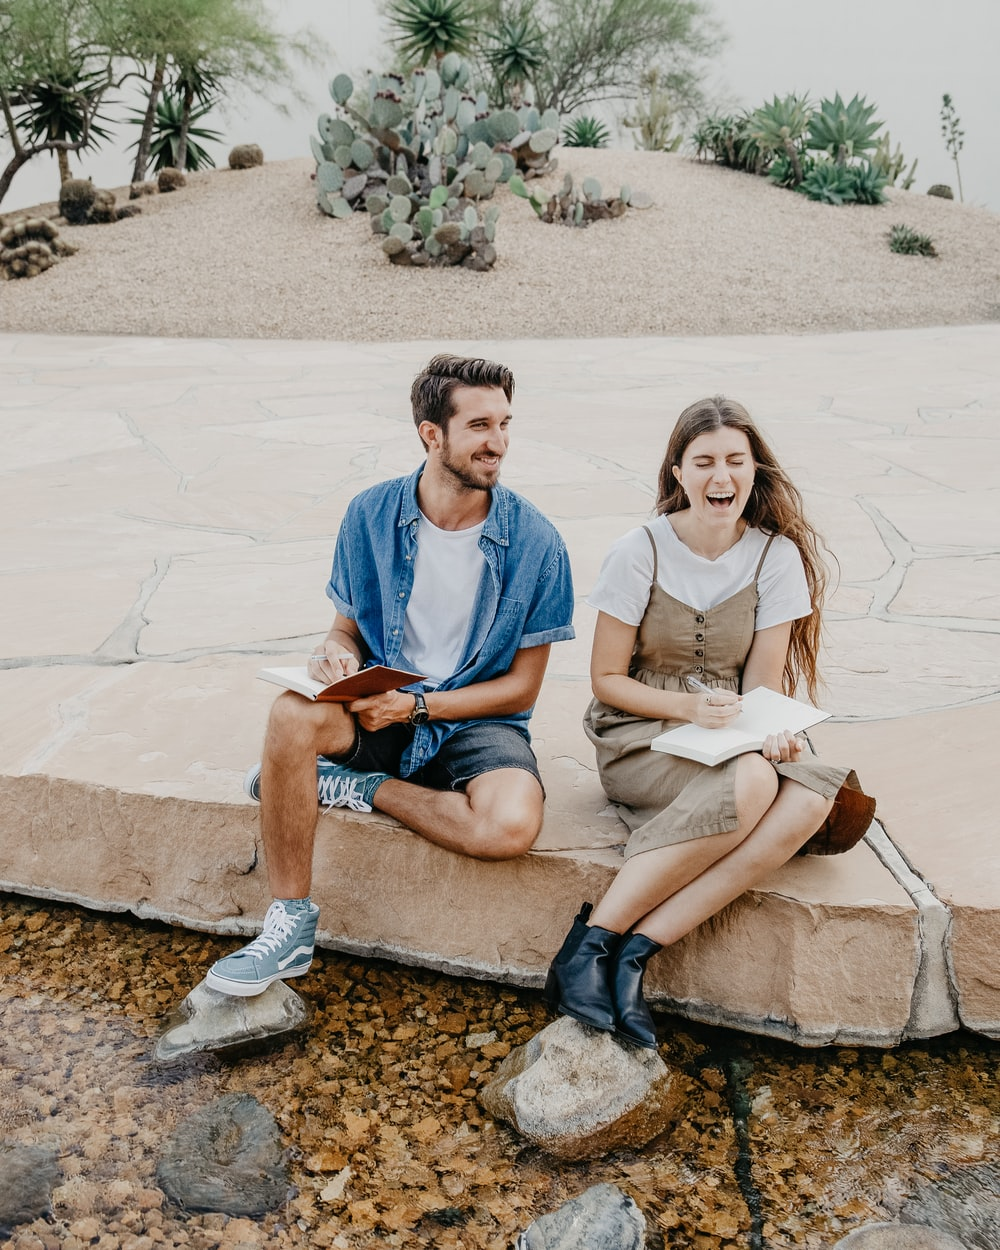 man and woman sitting side by side holding notebooks